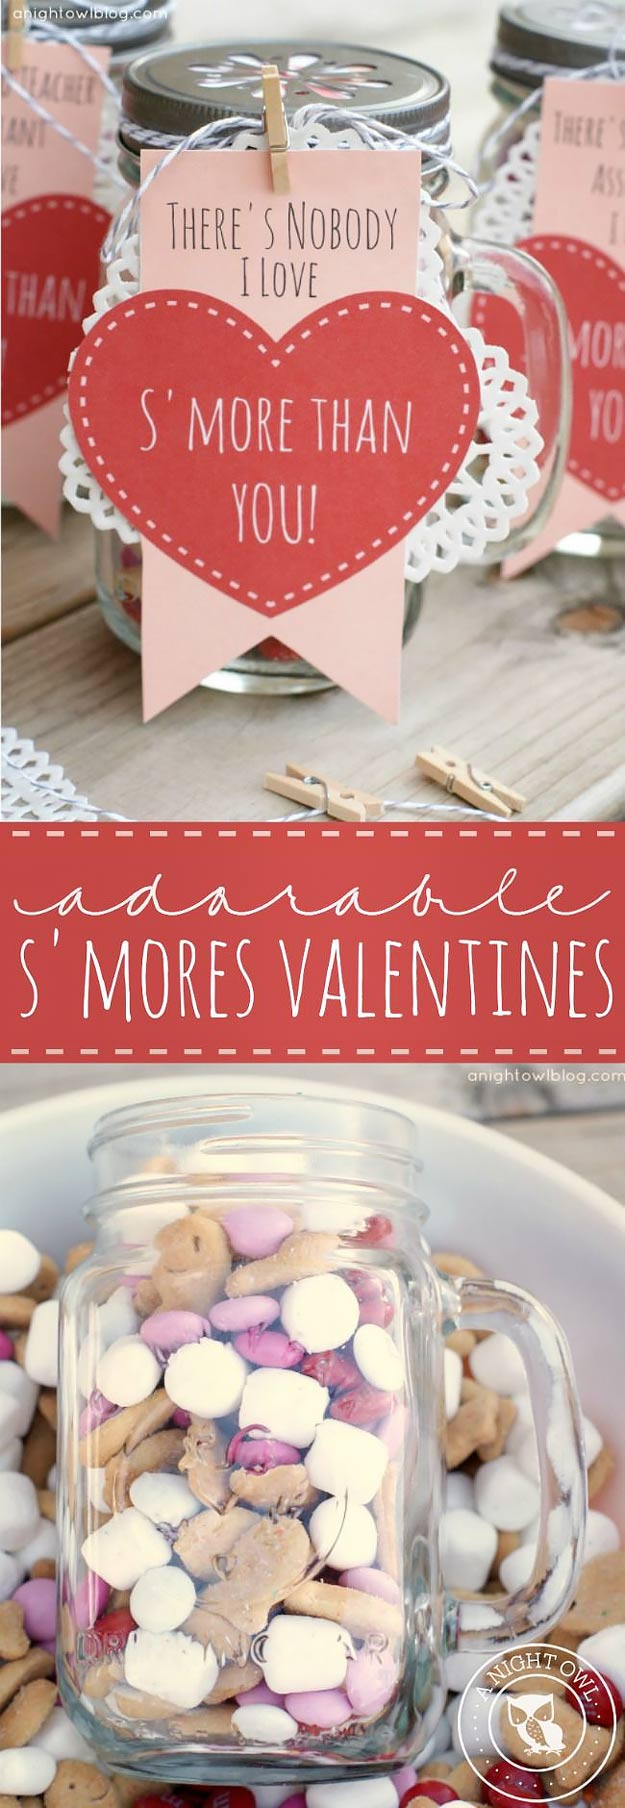 54 Mason Jar Valentine Gifts and CraftsDIY Joy